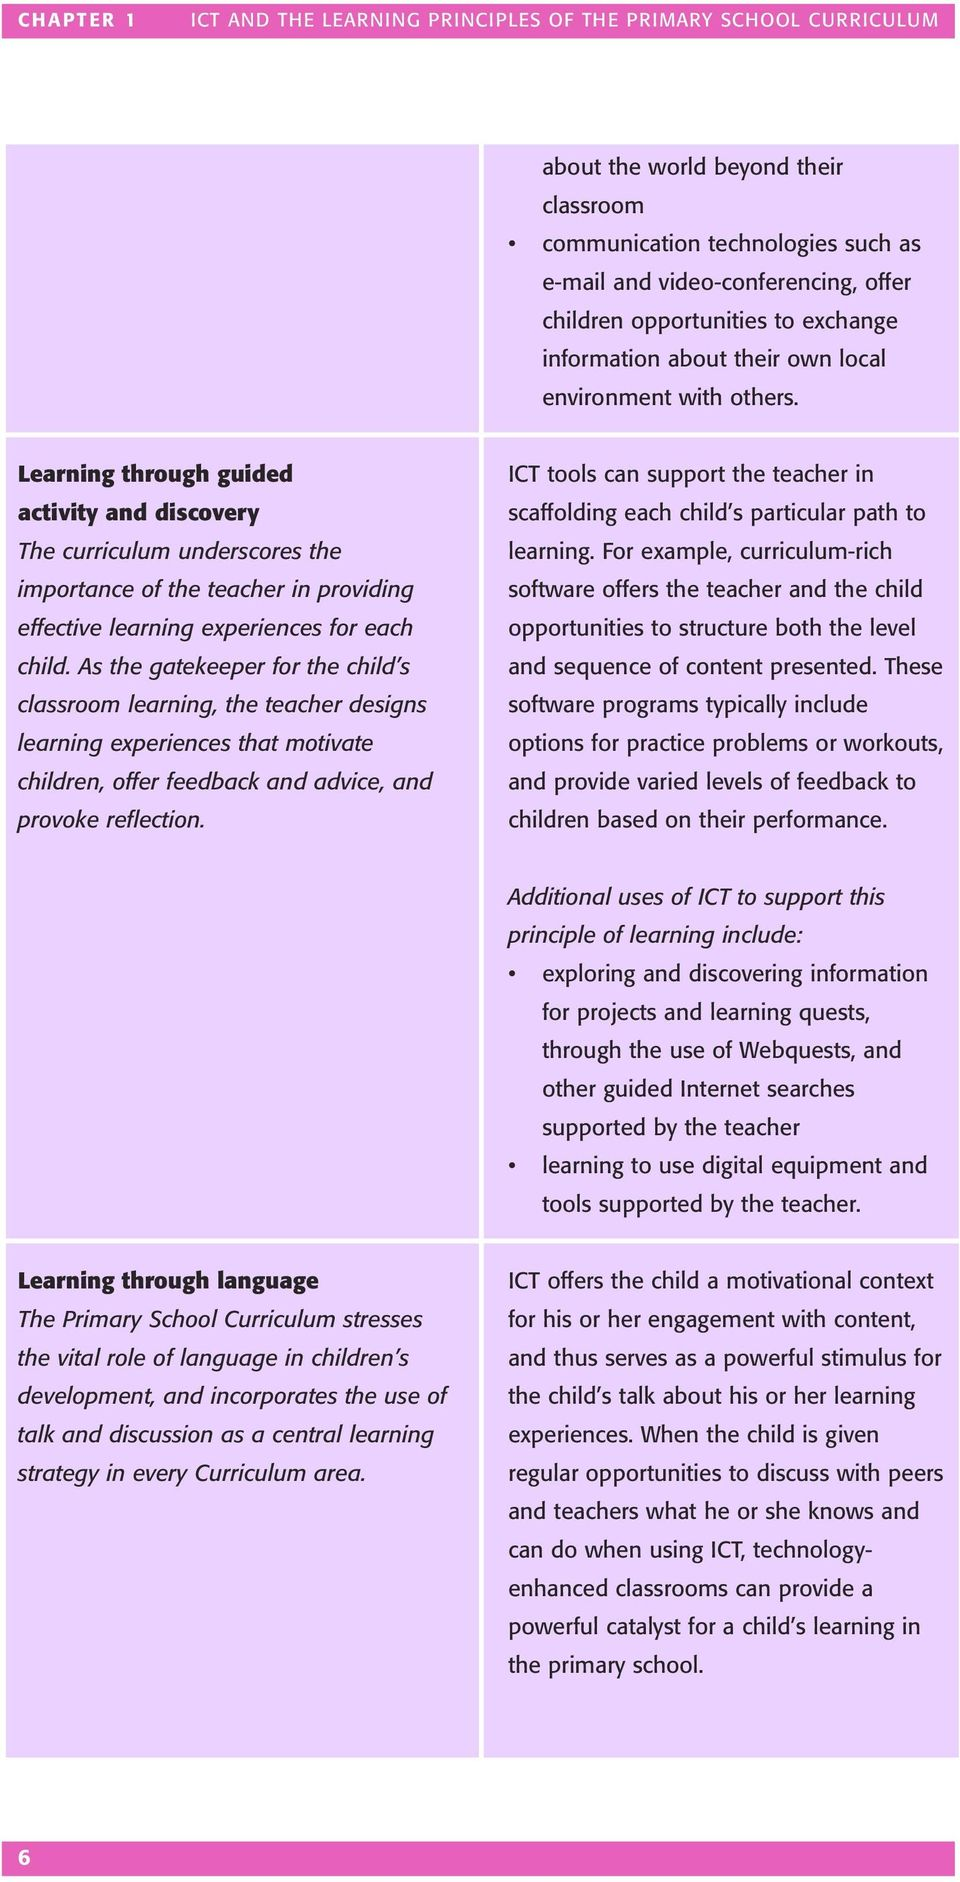 Learning through guided activity and discovery The curriculum underscores the importance of the teacher in providing effective learning experiences for each child.